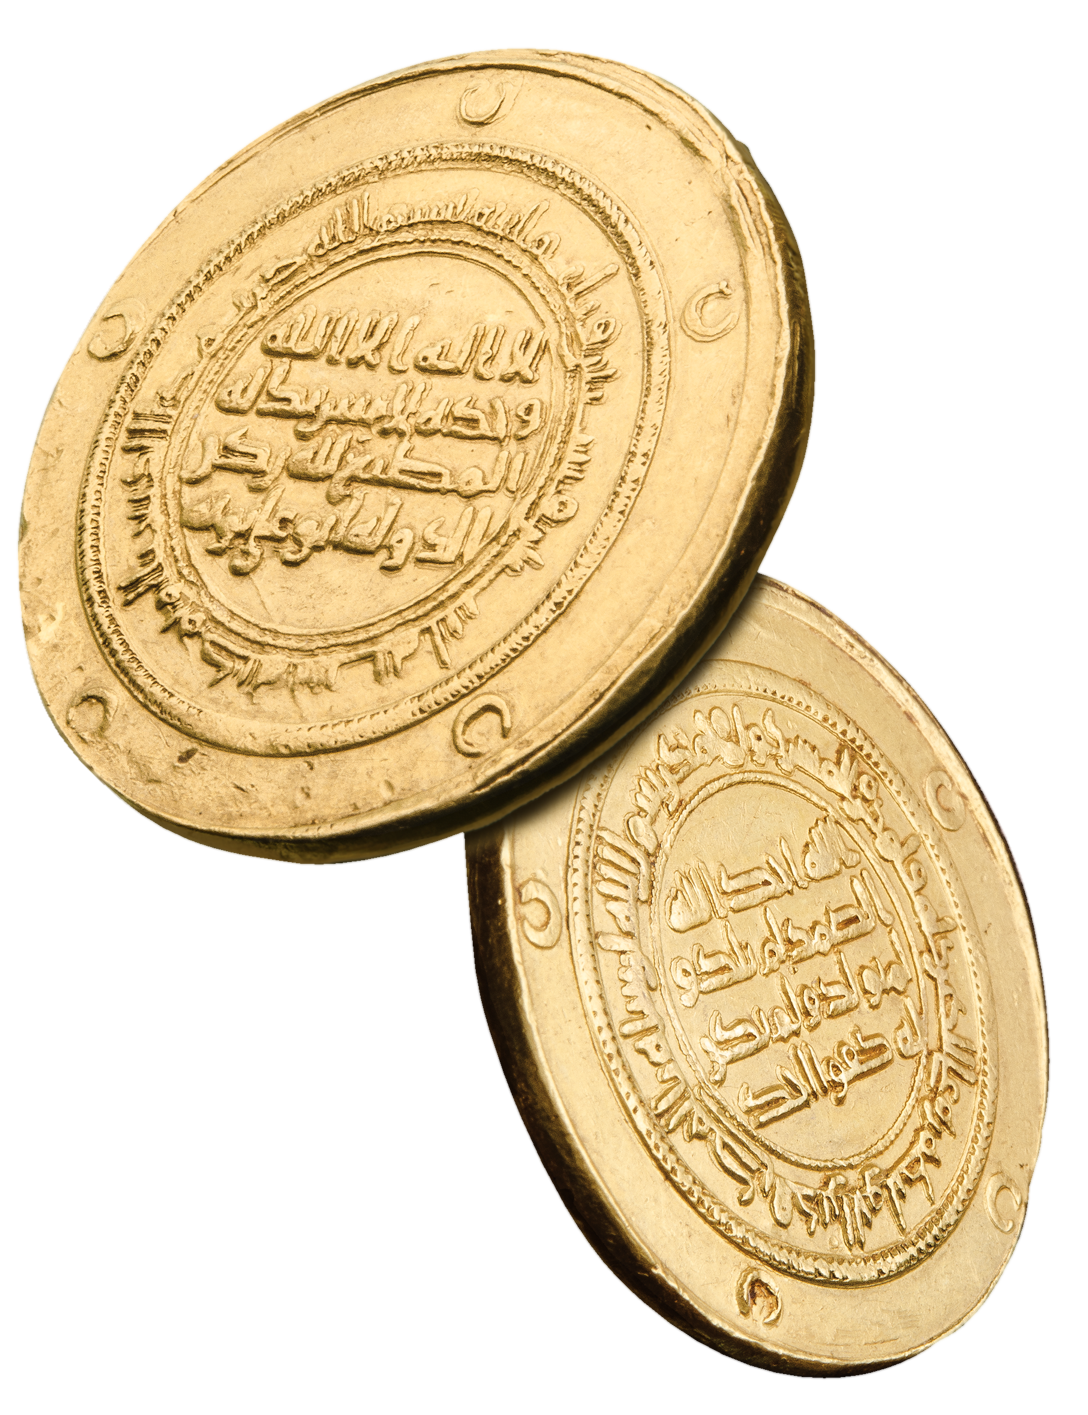 BUWAYHID, RUKN AL-DAWLA, Donative 10-dinars, al-Muhammadiya 362h, gold. Photographed for Morton and Eden in association with Sotheby's sold in auction in London Photography and retouch by Maria Queralt